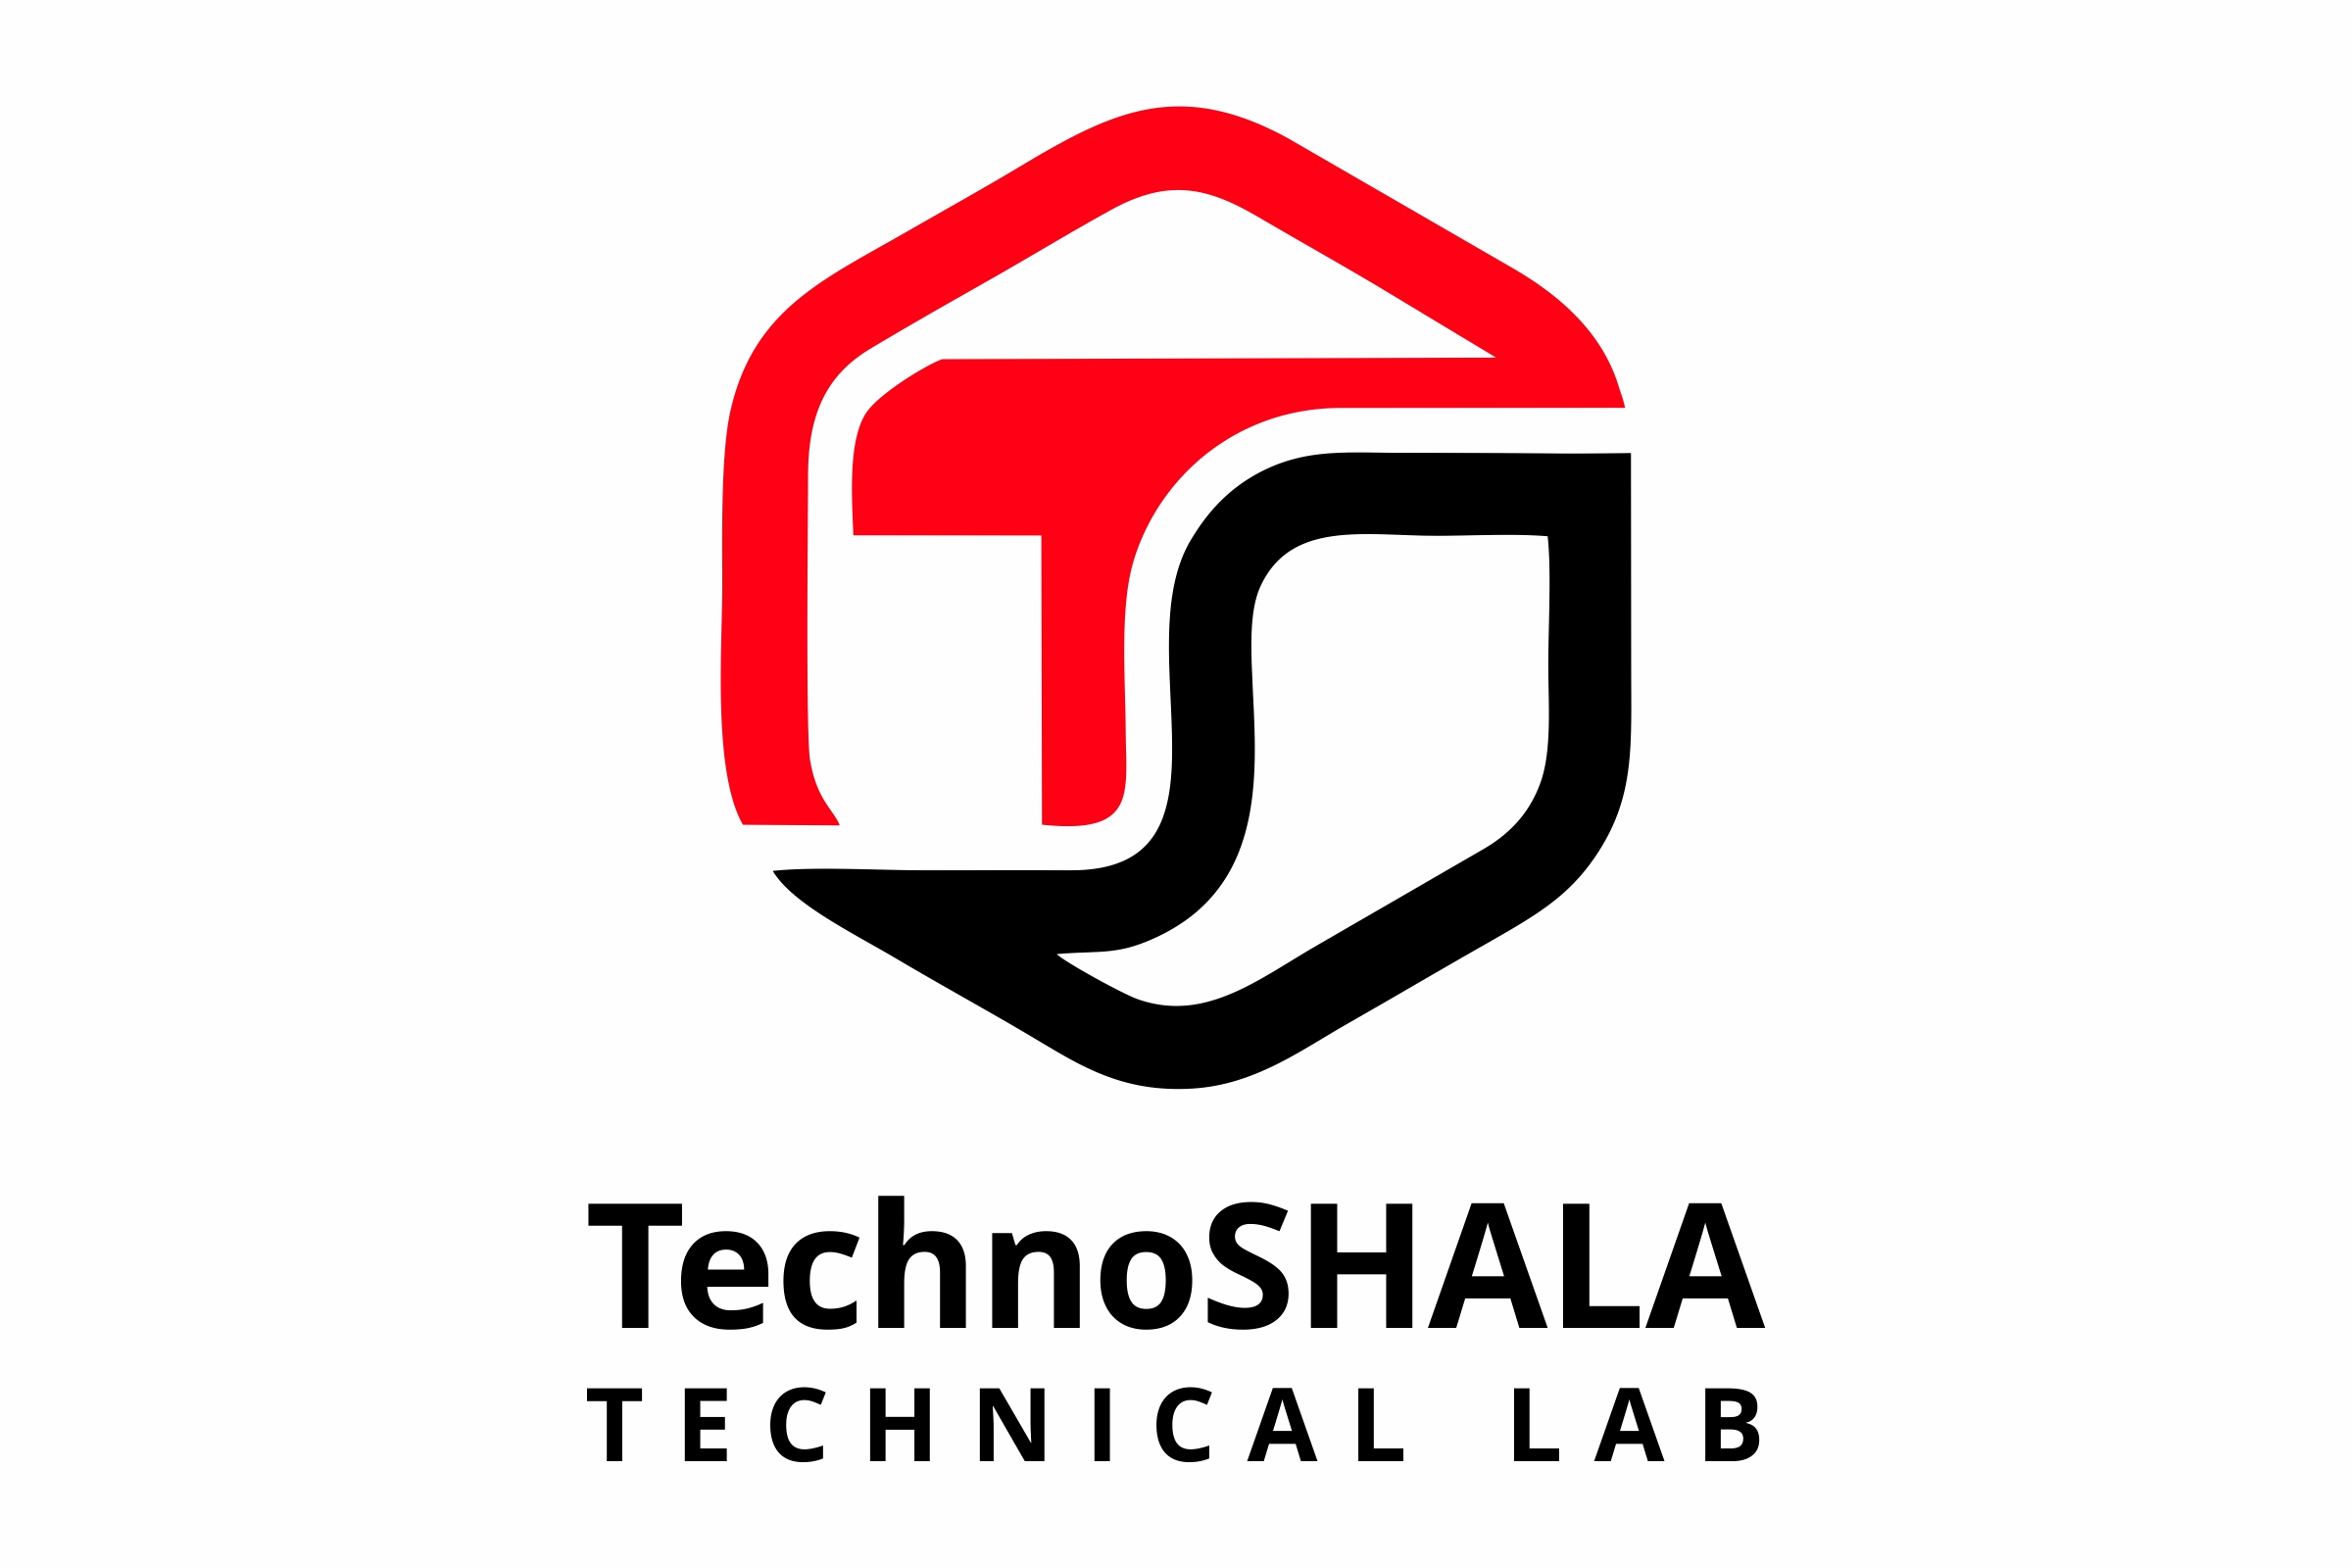 technical club, technoshala, best college for job placements, placements in engineering college, placement wise best college in bhopal